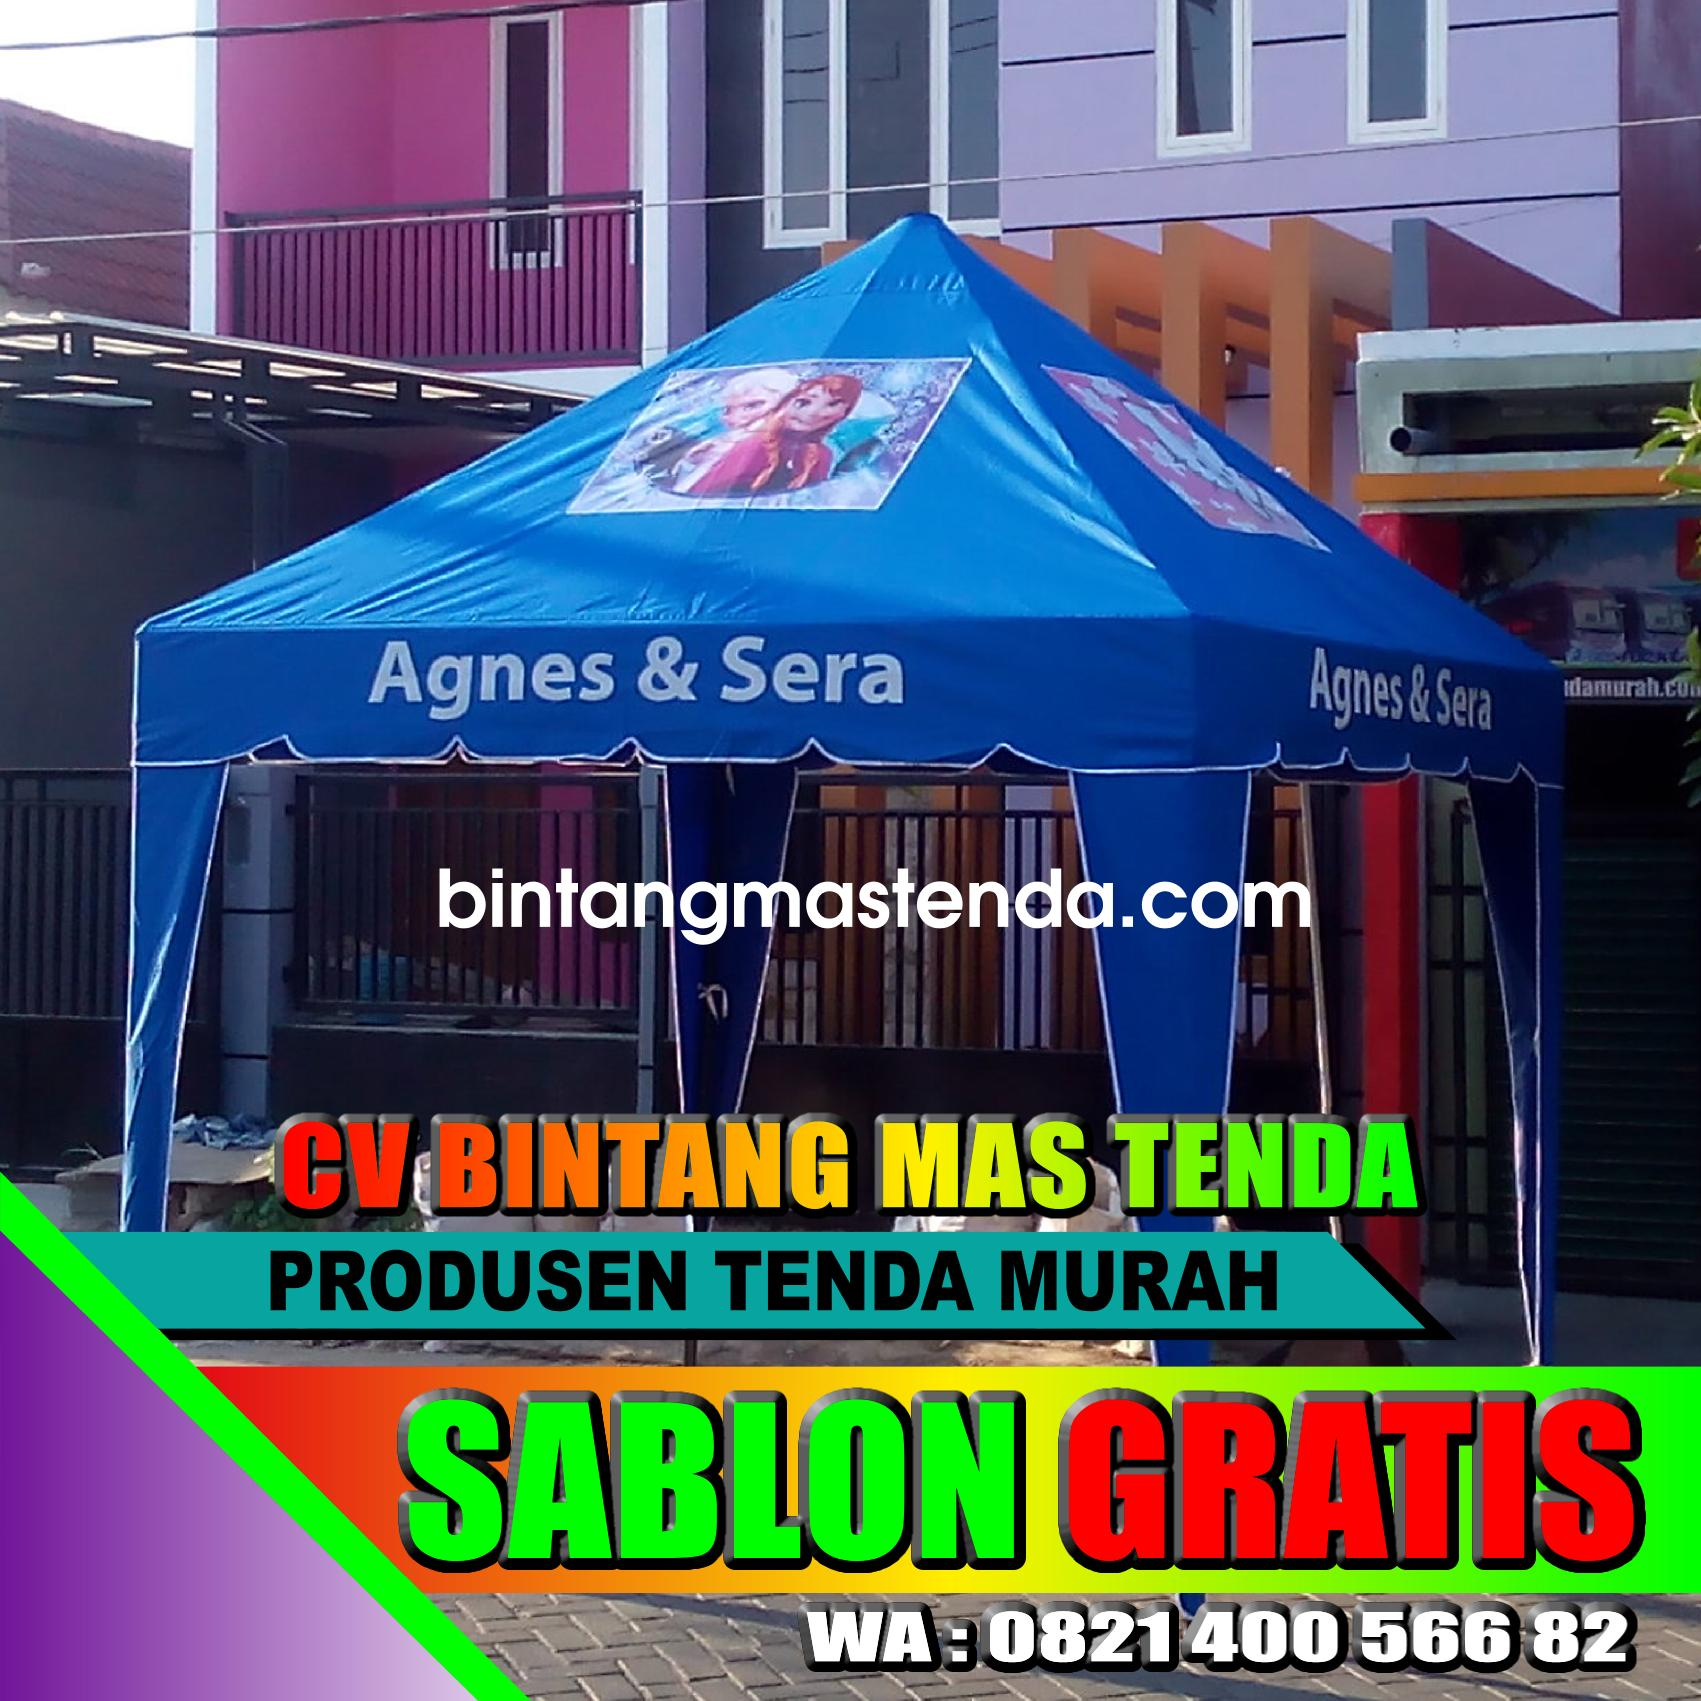 JUAL TENDA CAFE BANJARMASIN